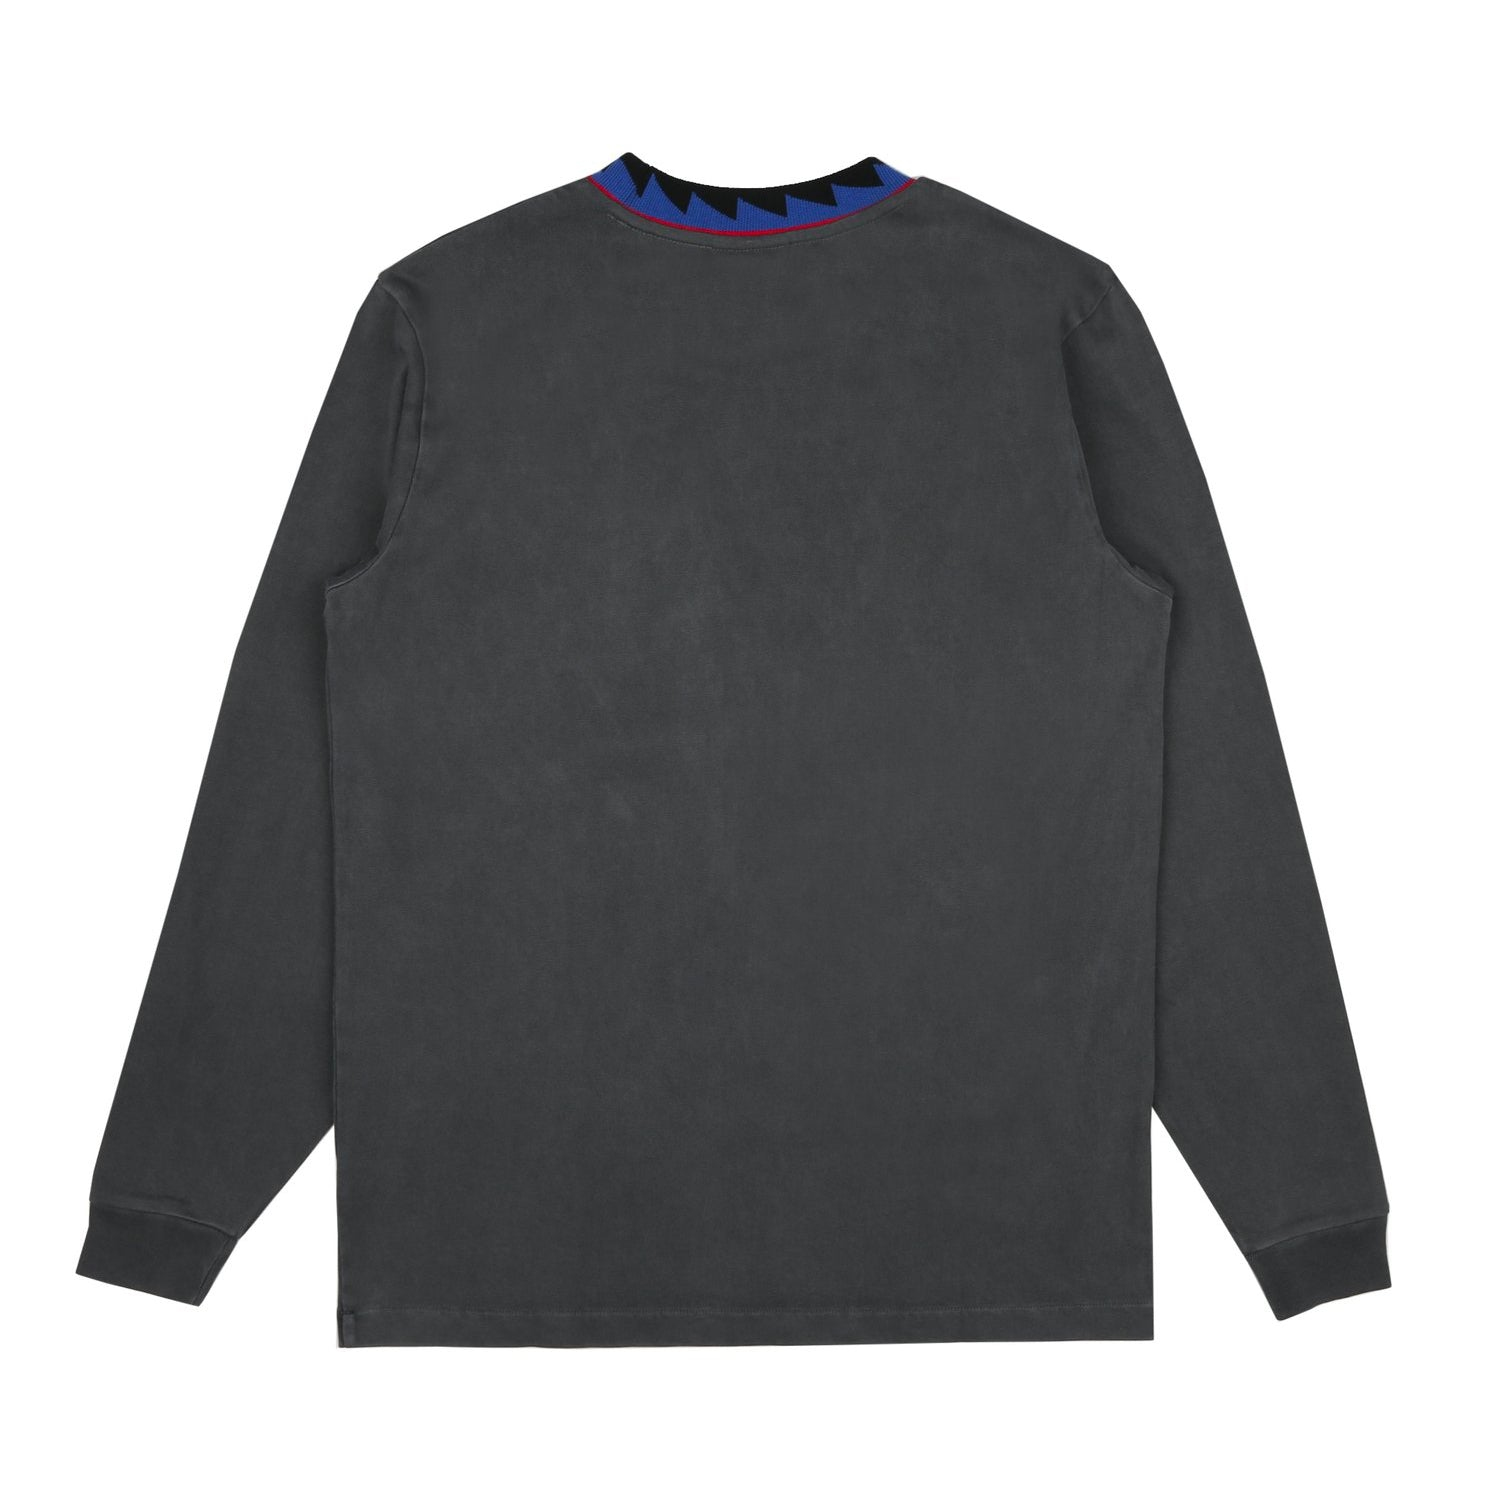 L/S POCKET T-SHIRT